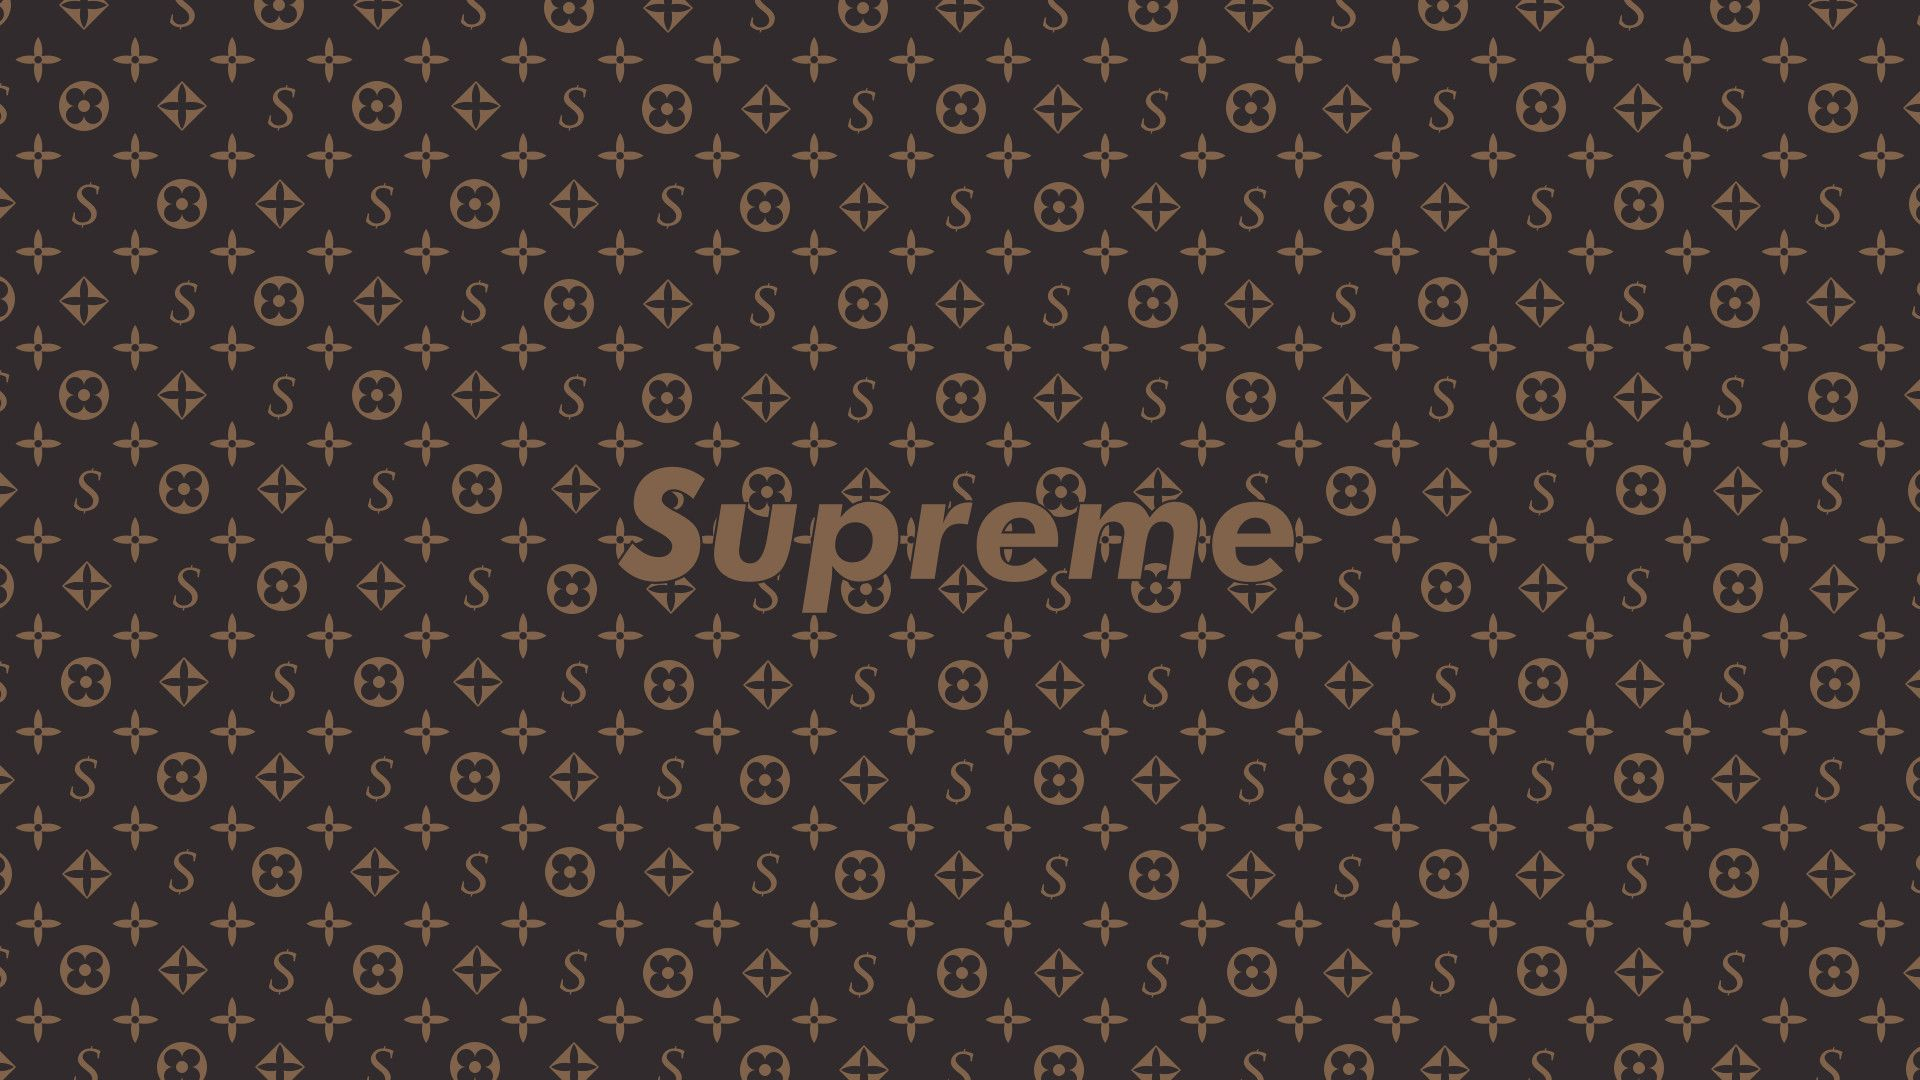 1920x1080 Some Supreme x LV Wallpapers I made Supreme